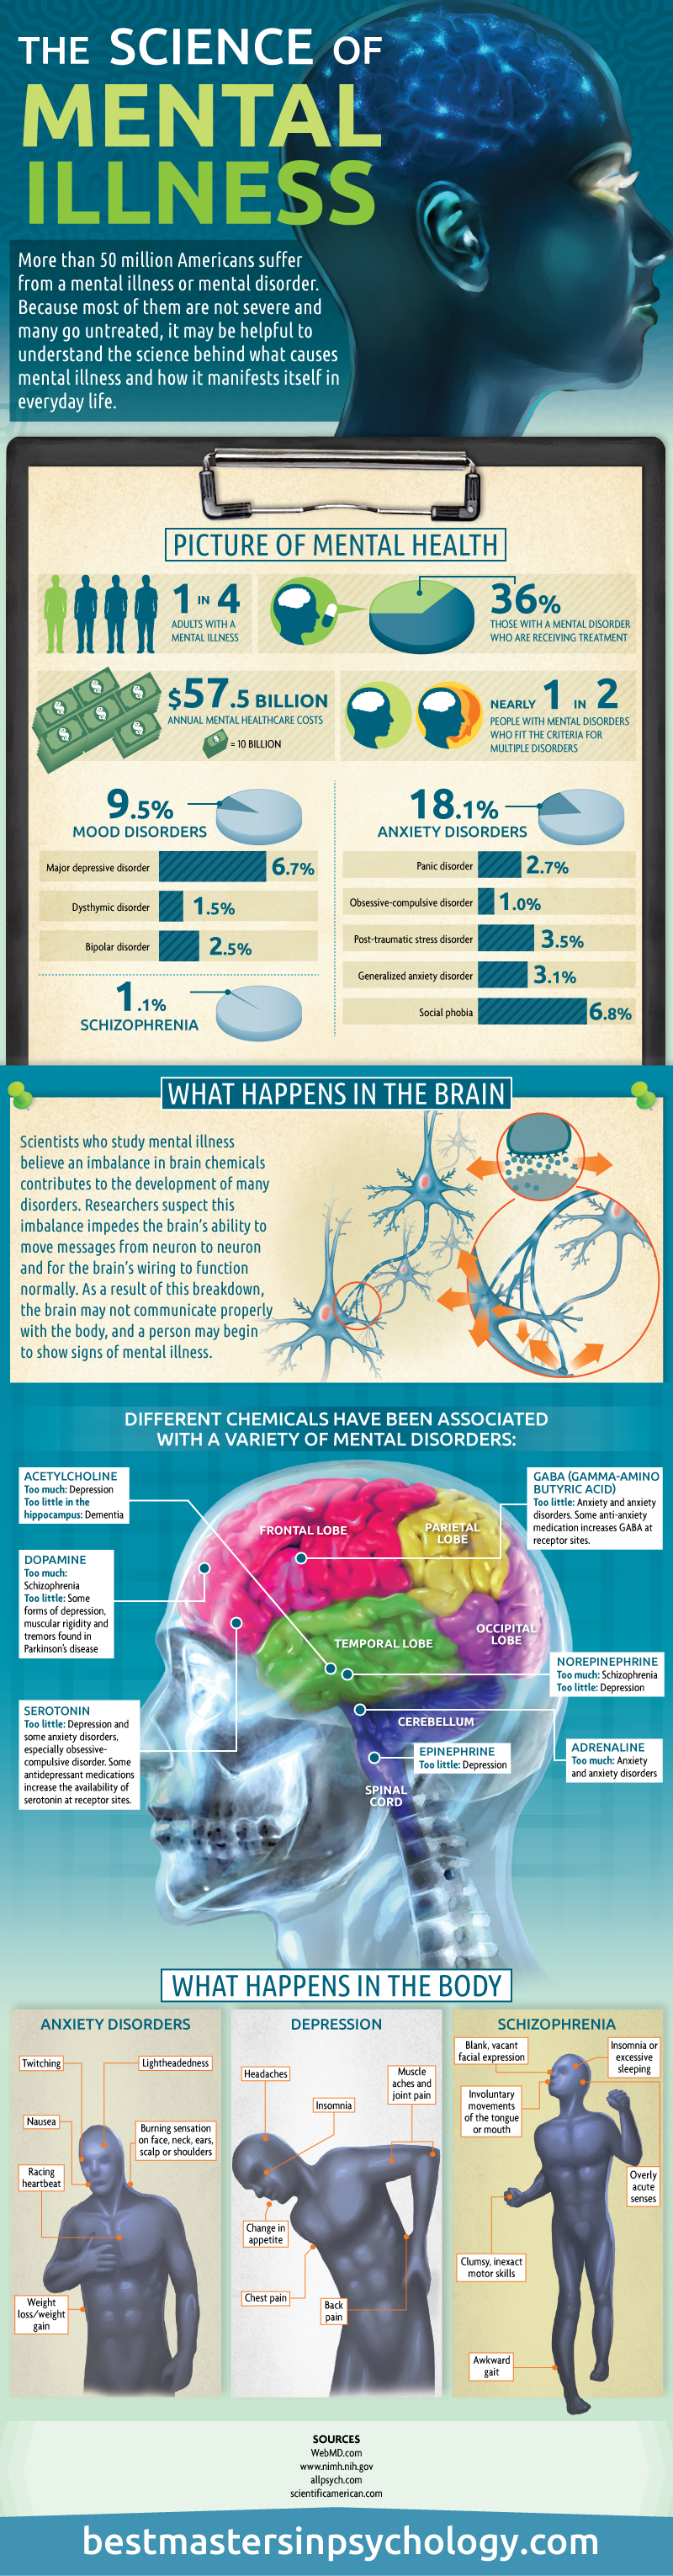 The-Science-of-Mental-Illness-Infographic